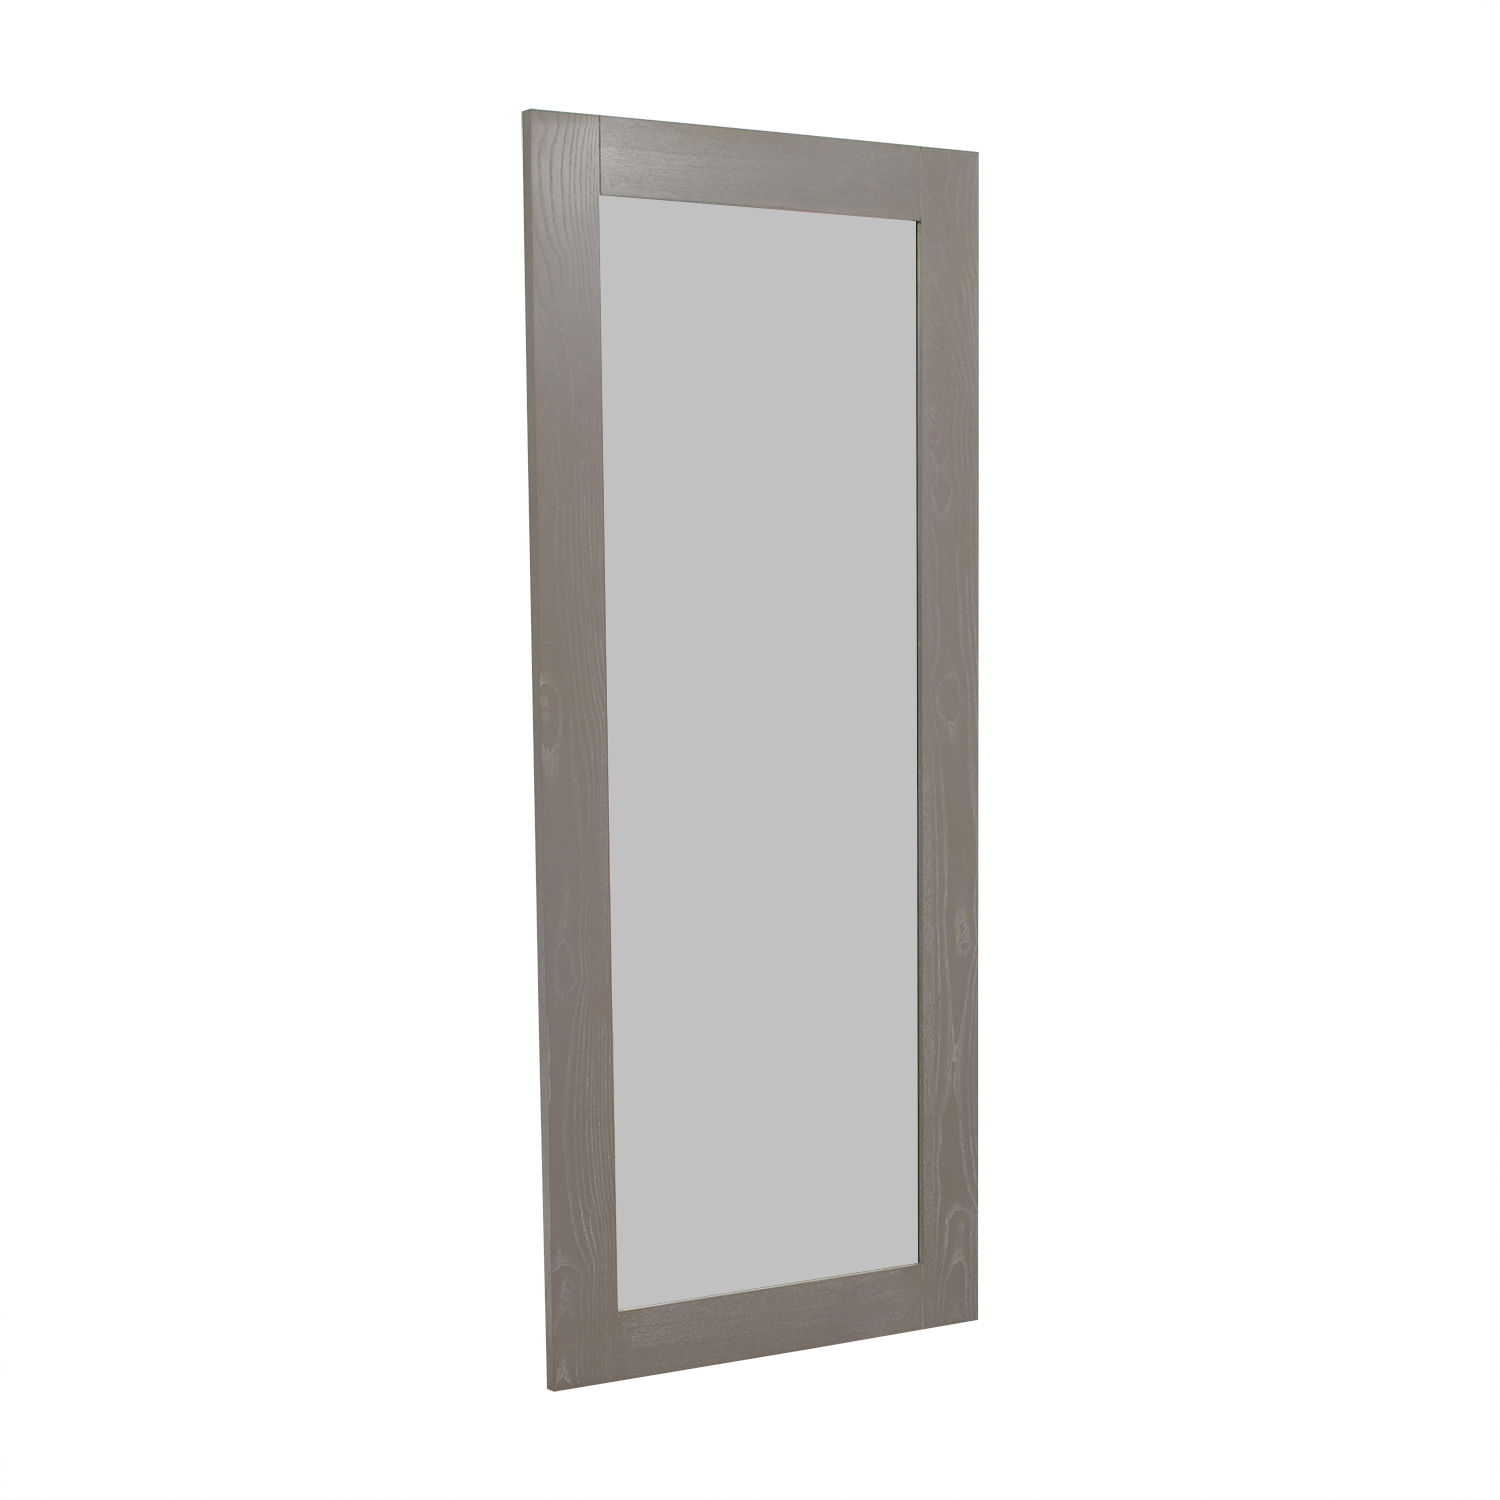 CB2 CB2 Grey Hanging/Leaning Floor Mirror nj